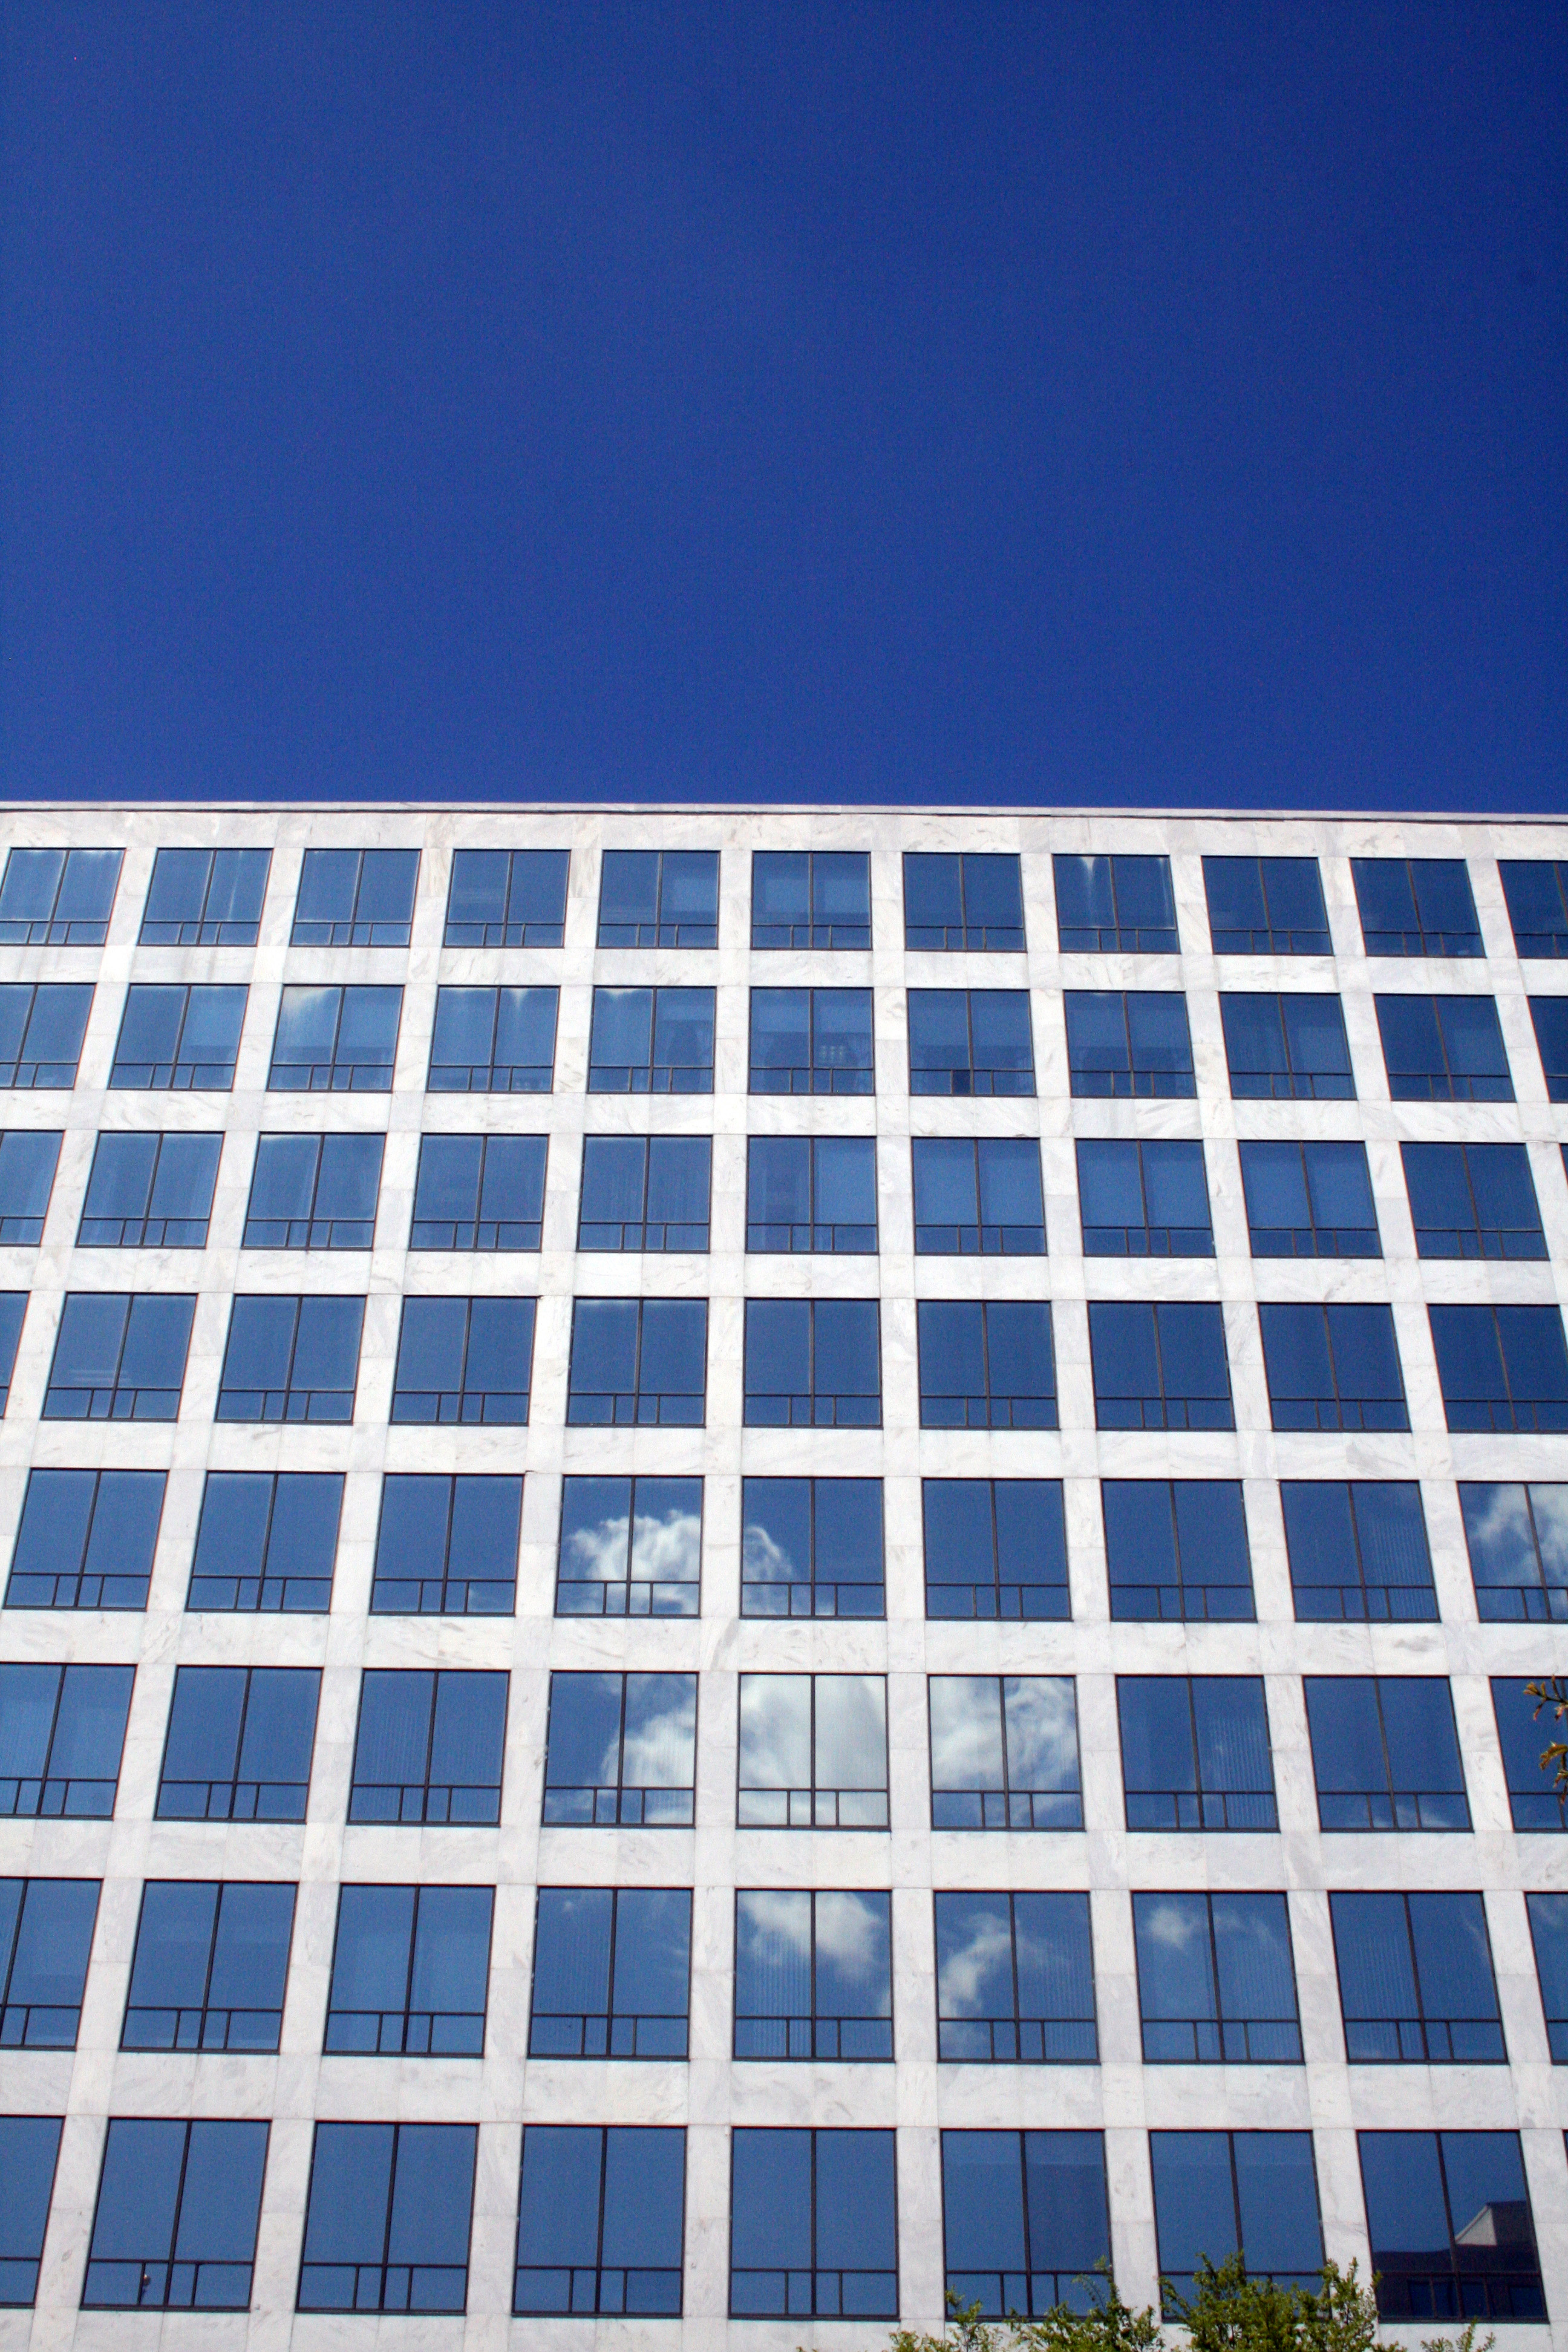 The Orville Wright Federal Building, glass and marble façade.